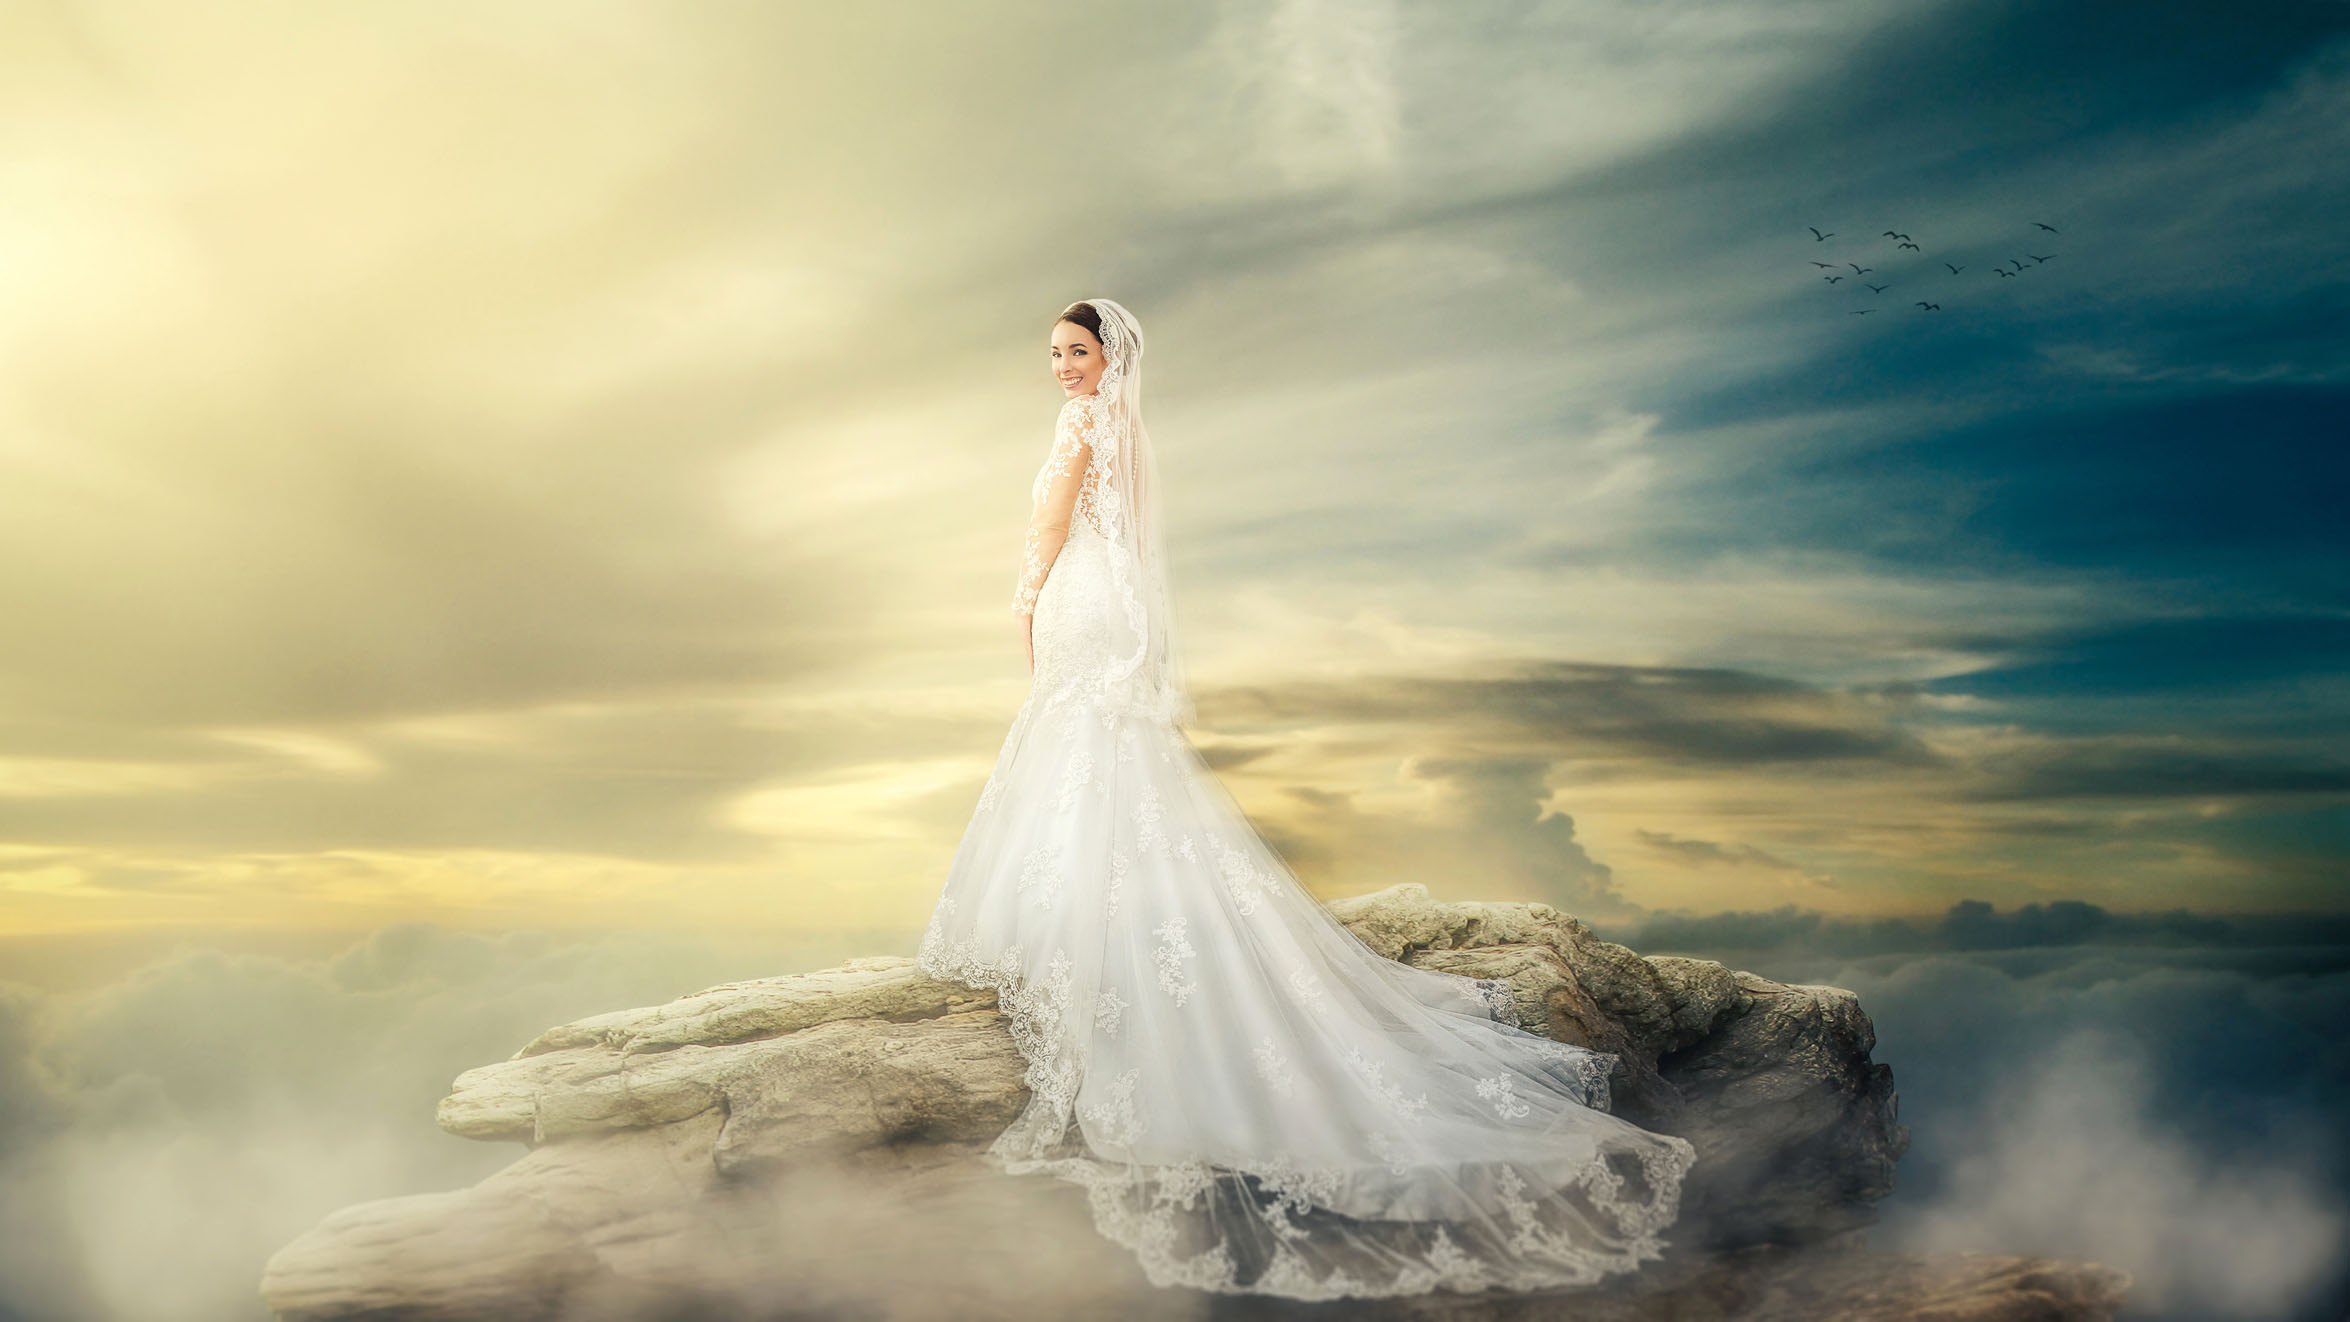 Hochzeitsfotograf / Weddingphotography / Wedding Art / Onylwedding.de / Fotostyle Schindler / Straubing